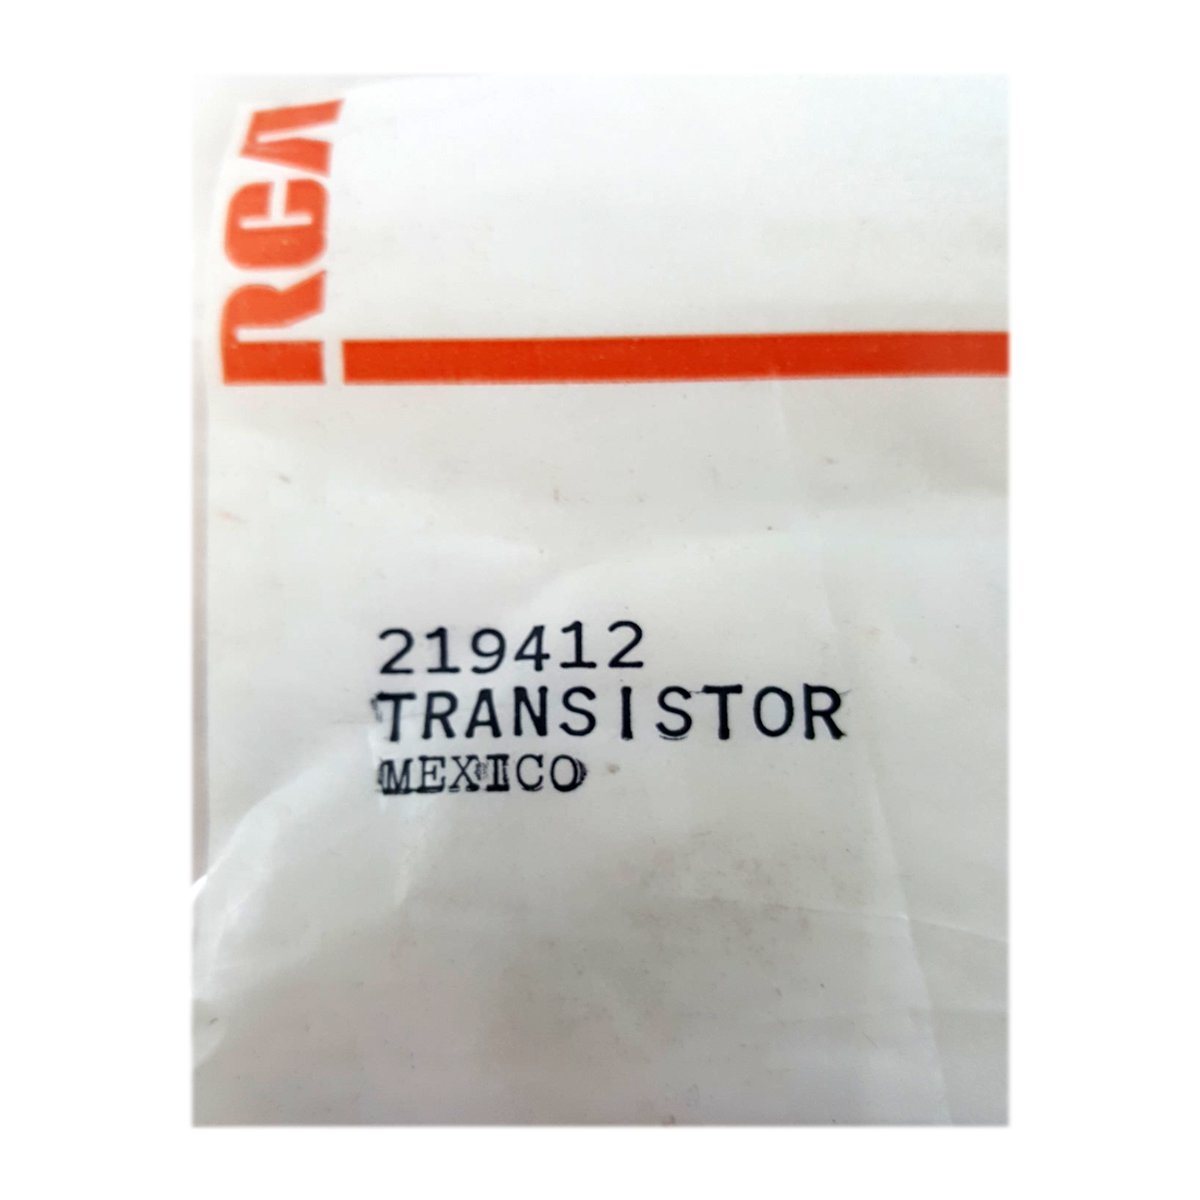 RCA VCR Replacement Transistor Part No. 219412